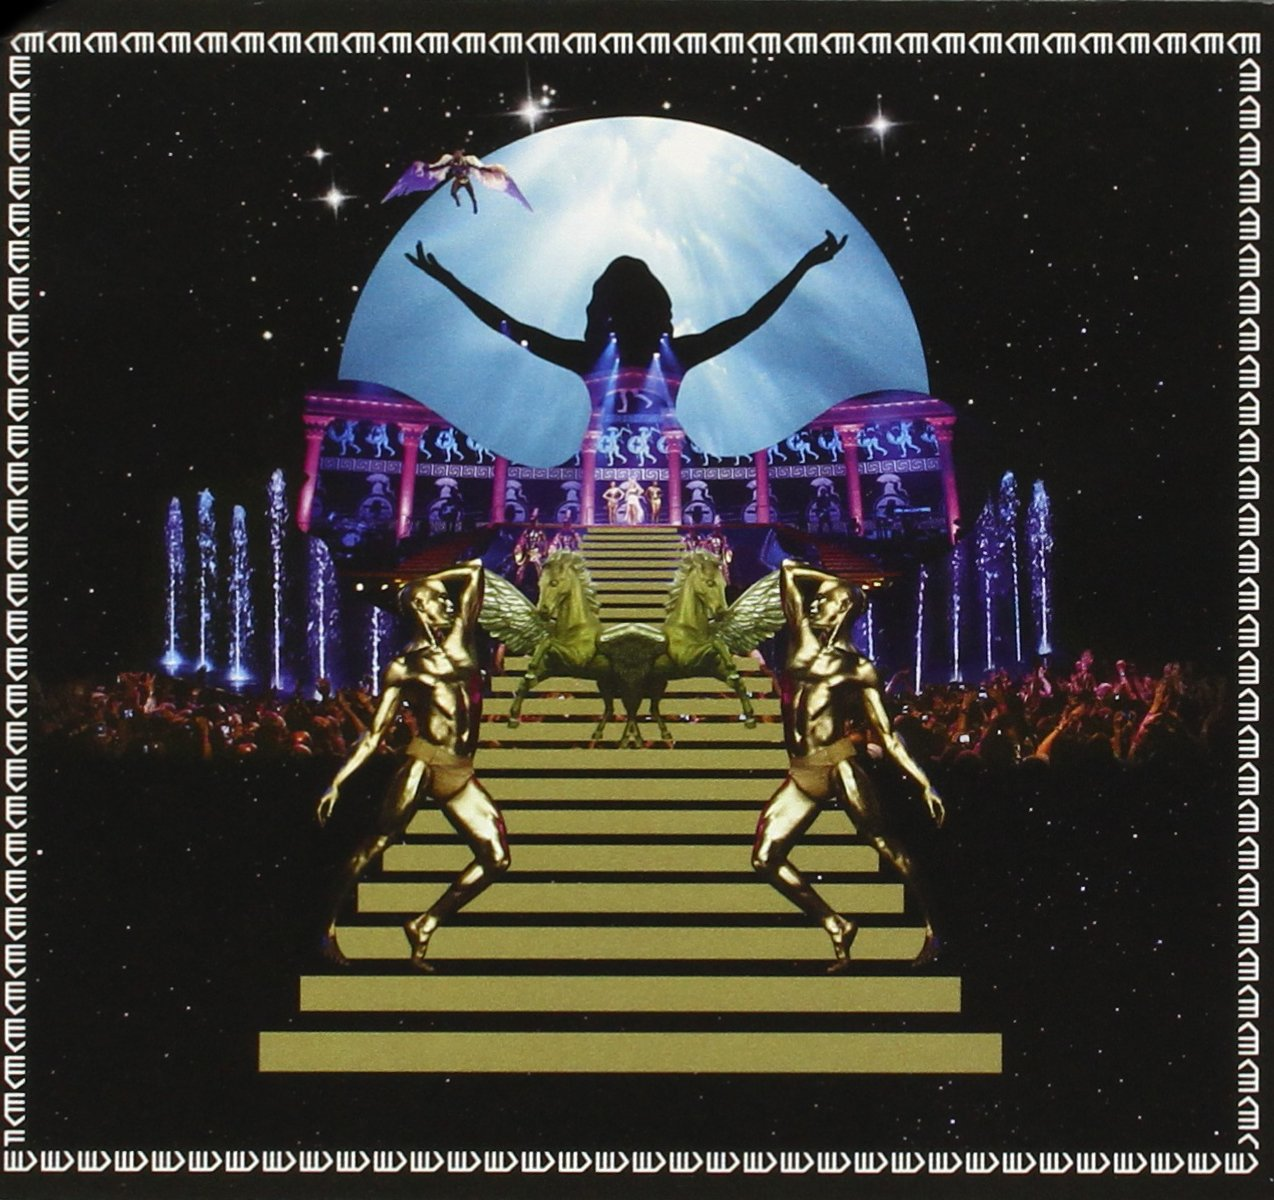 Aphrodite: Les Folies (2 CD + DVD) by Astralwerks